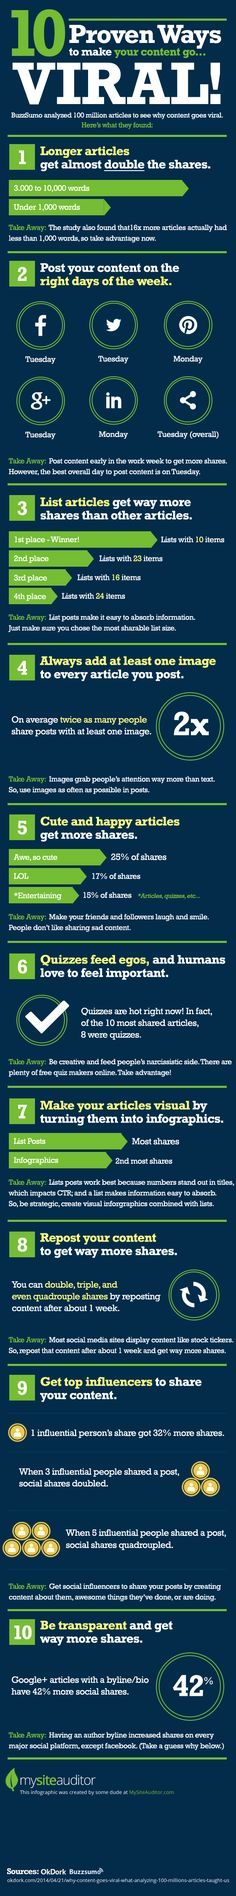 10 Proven Ways to Make Content Go Viral [INFOGRAPHIC] - @socialmedia2day